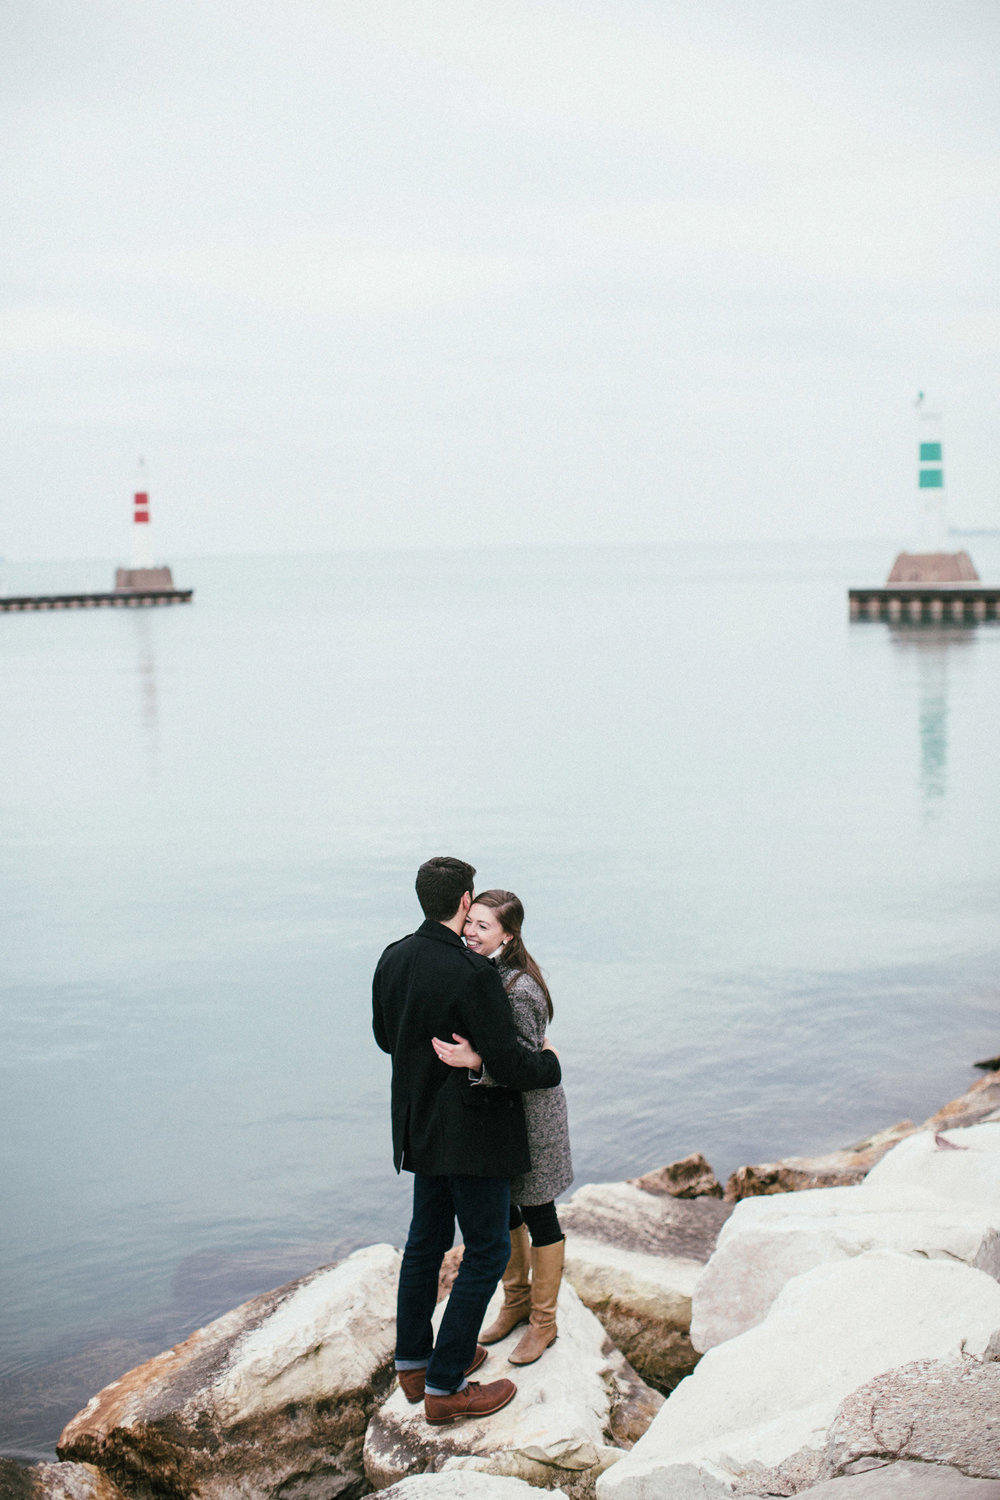 Chicago Engagement Session_Montrose Park_Kindling Wedding PhotographyBLOG19.JPG